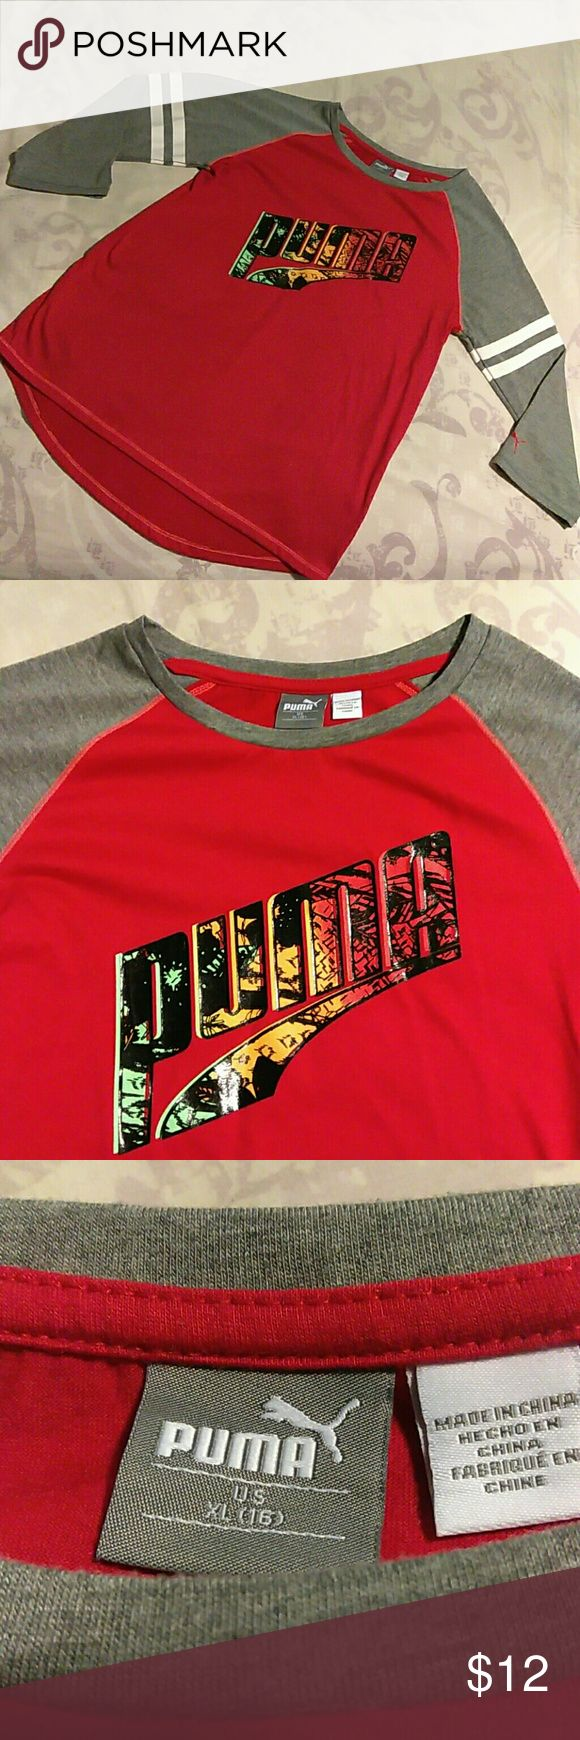 🆕XL Size 16 Puma Shirt🎉 This is a XL Red & Gray Puma shirt Quarter sleeves gray with white stripes 💋 ✨Unique Puma design across chest ✨85% polyester 15% Cotton Exclusive decoration extra Soft and so comfortable Tags removed after purchased, soon after  I found it doesn't fit my teenage Daughter!! Ugh 😔 Puma Shirts & Tops Tees - Short Sleeve